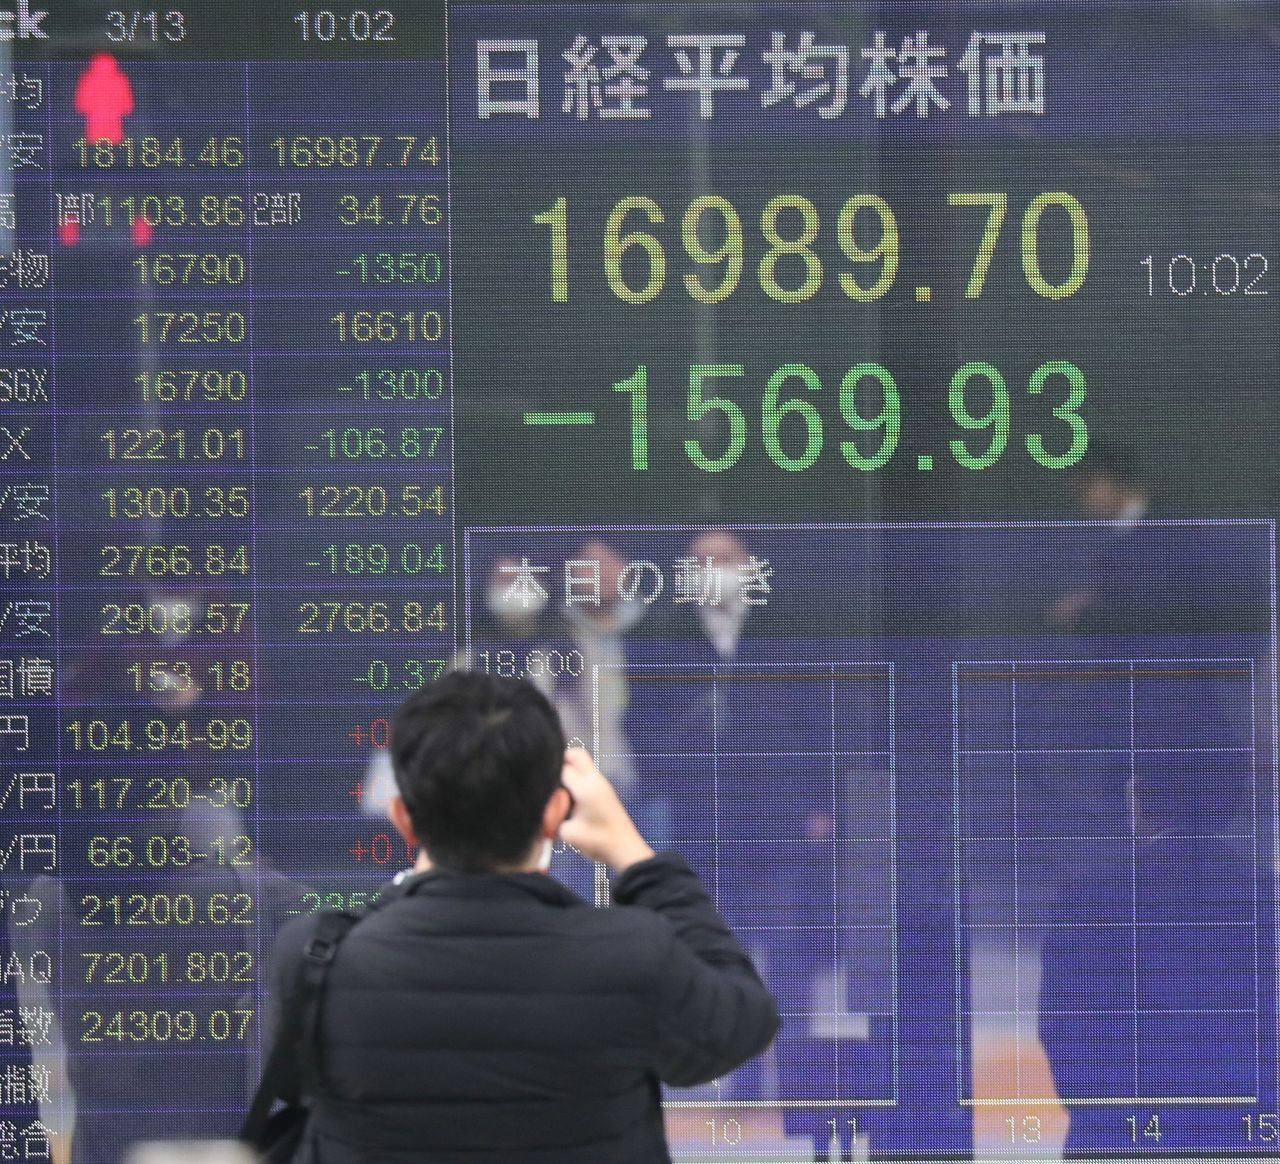 A board shows the Nikkei index in Tokyo on March 13, 2020. (© Jiji)